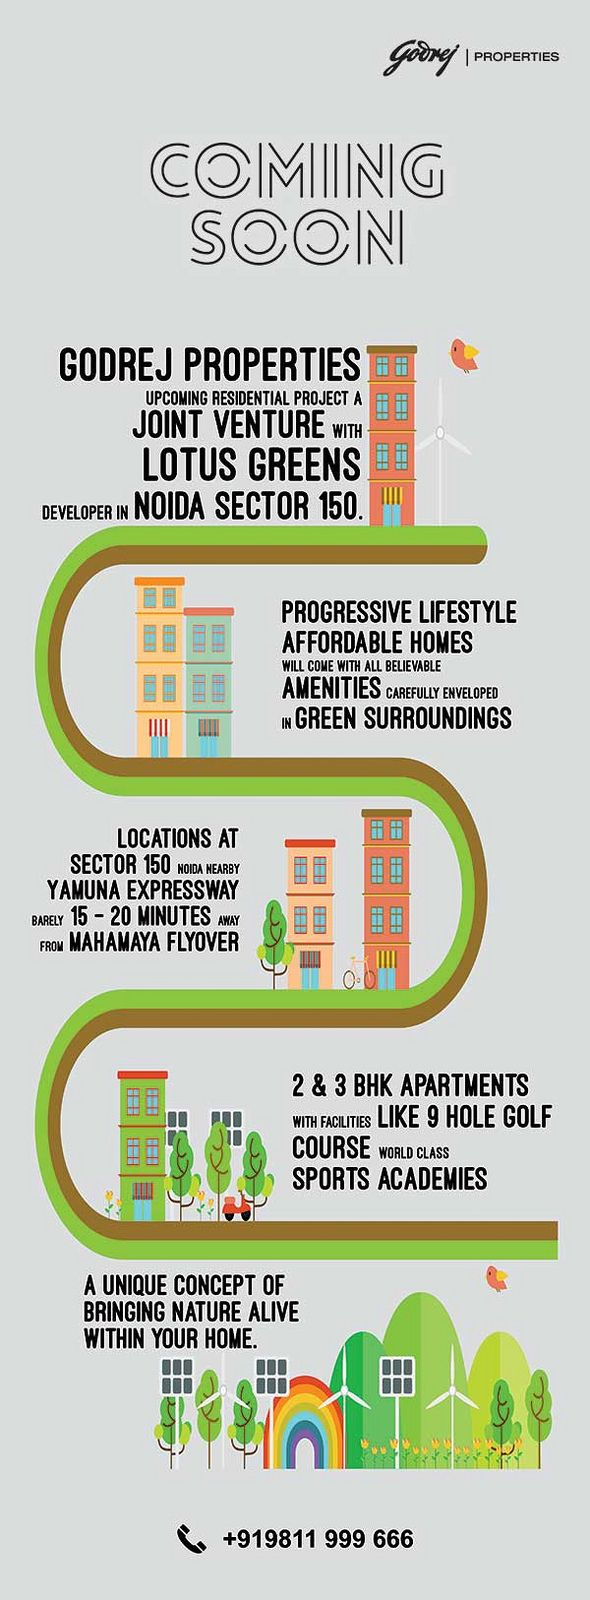 https://flic.kr/p/Q8jerk | Godrej Project Noida Sector 150 | Godrej Project Noida Sector 150 offers the opportunity to enjoy the dynamic city life while living in the spacious comfort of an apartment by Godrej Developer. www.indrealestates.com/project/godrej-properties-noida/